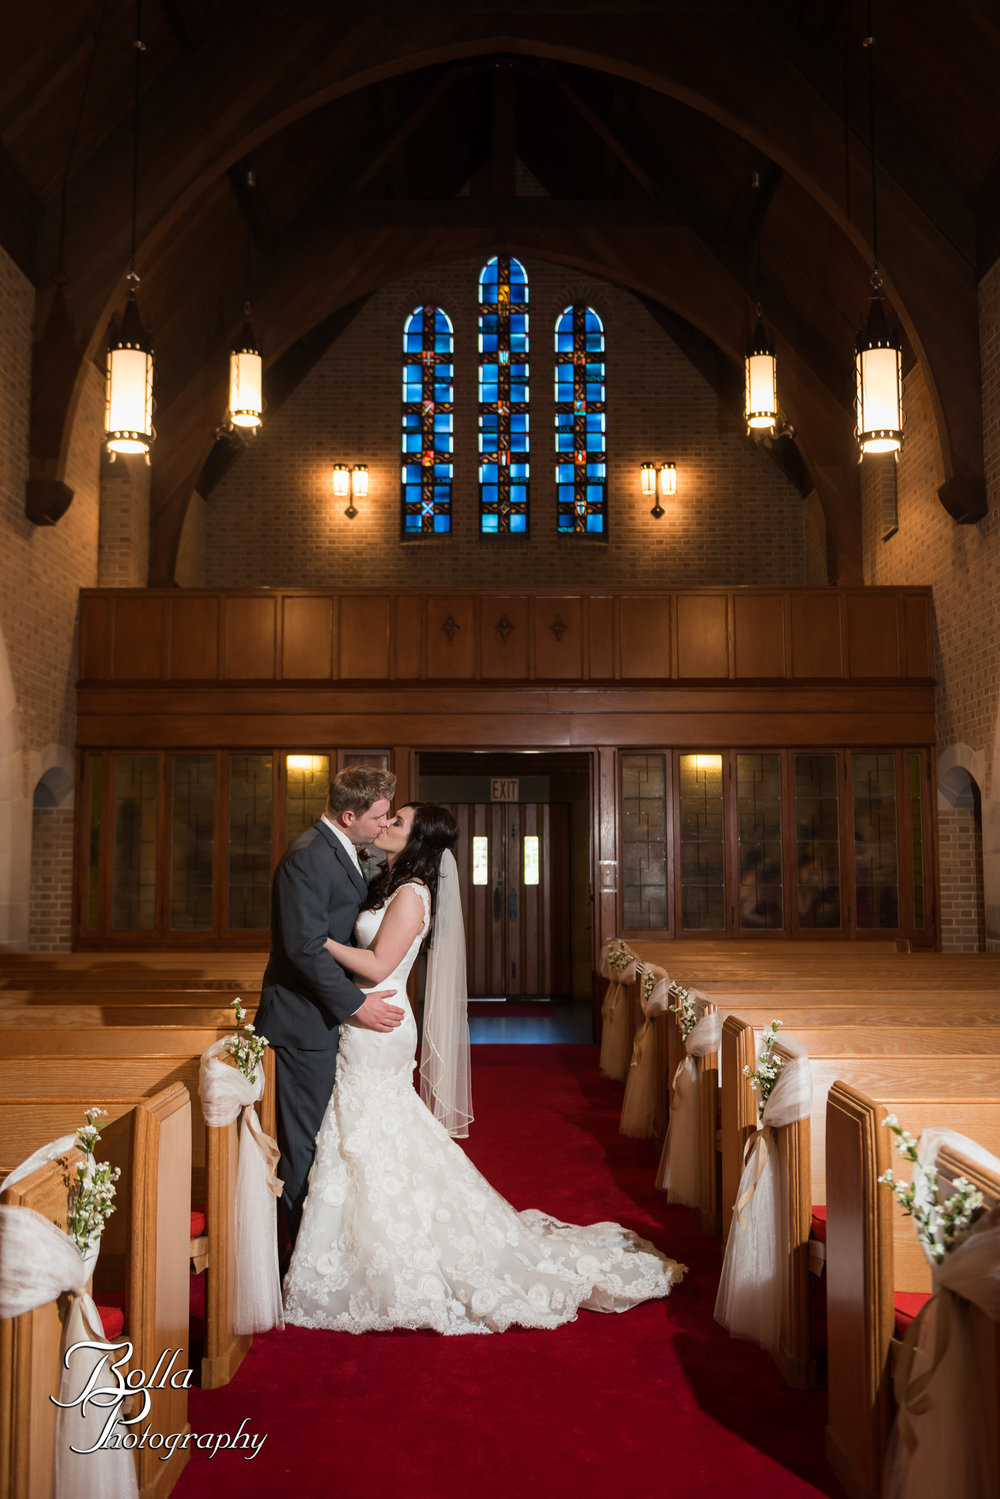 Bolla_photography_edwardsville_wedding_photographer_st_louis_weddings_Reilmann-0001.jpg